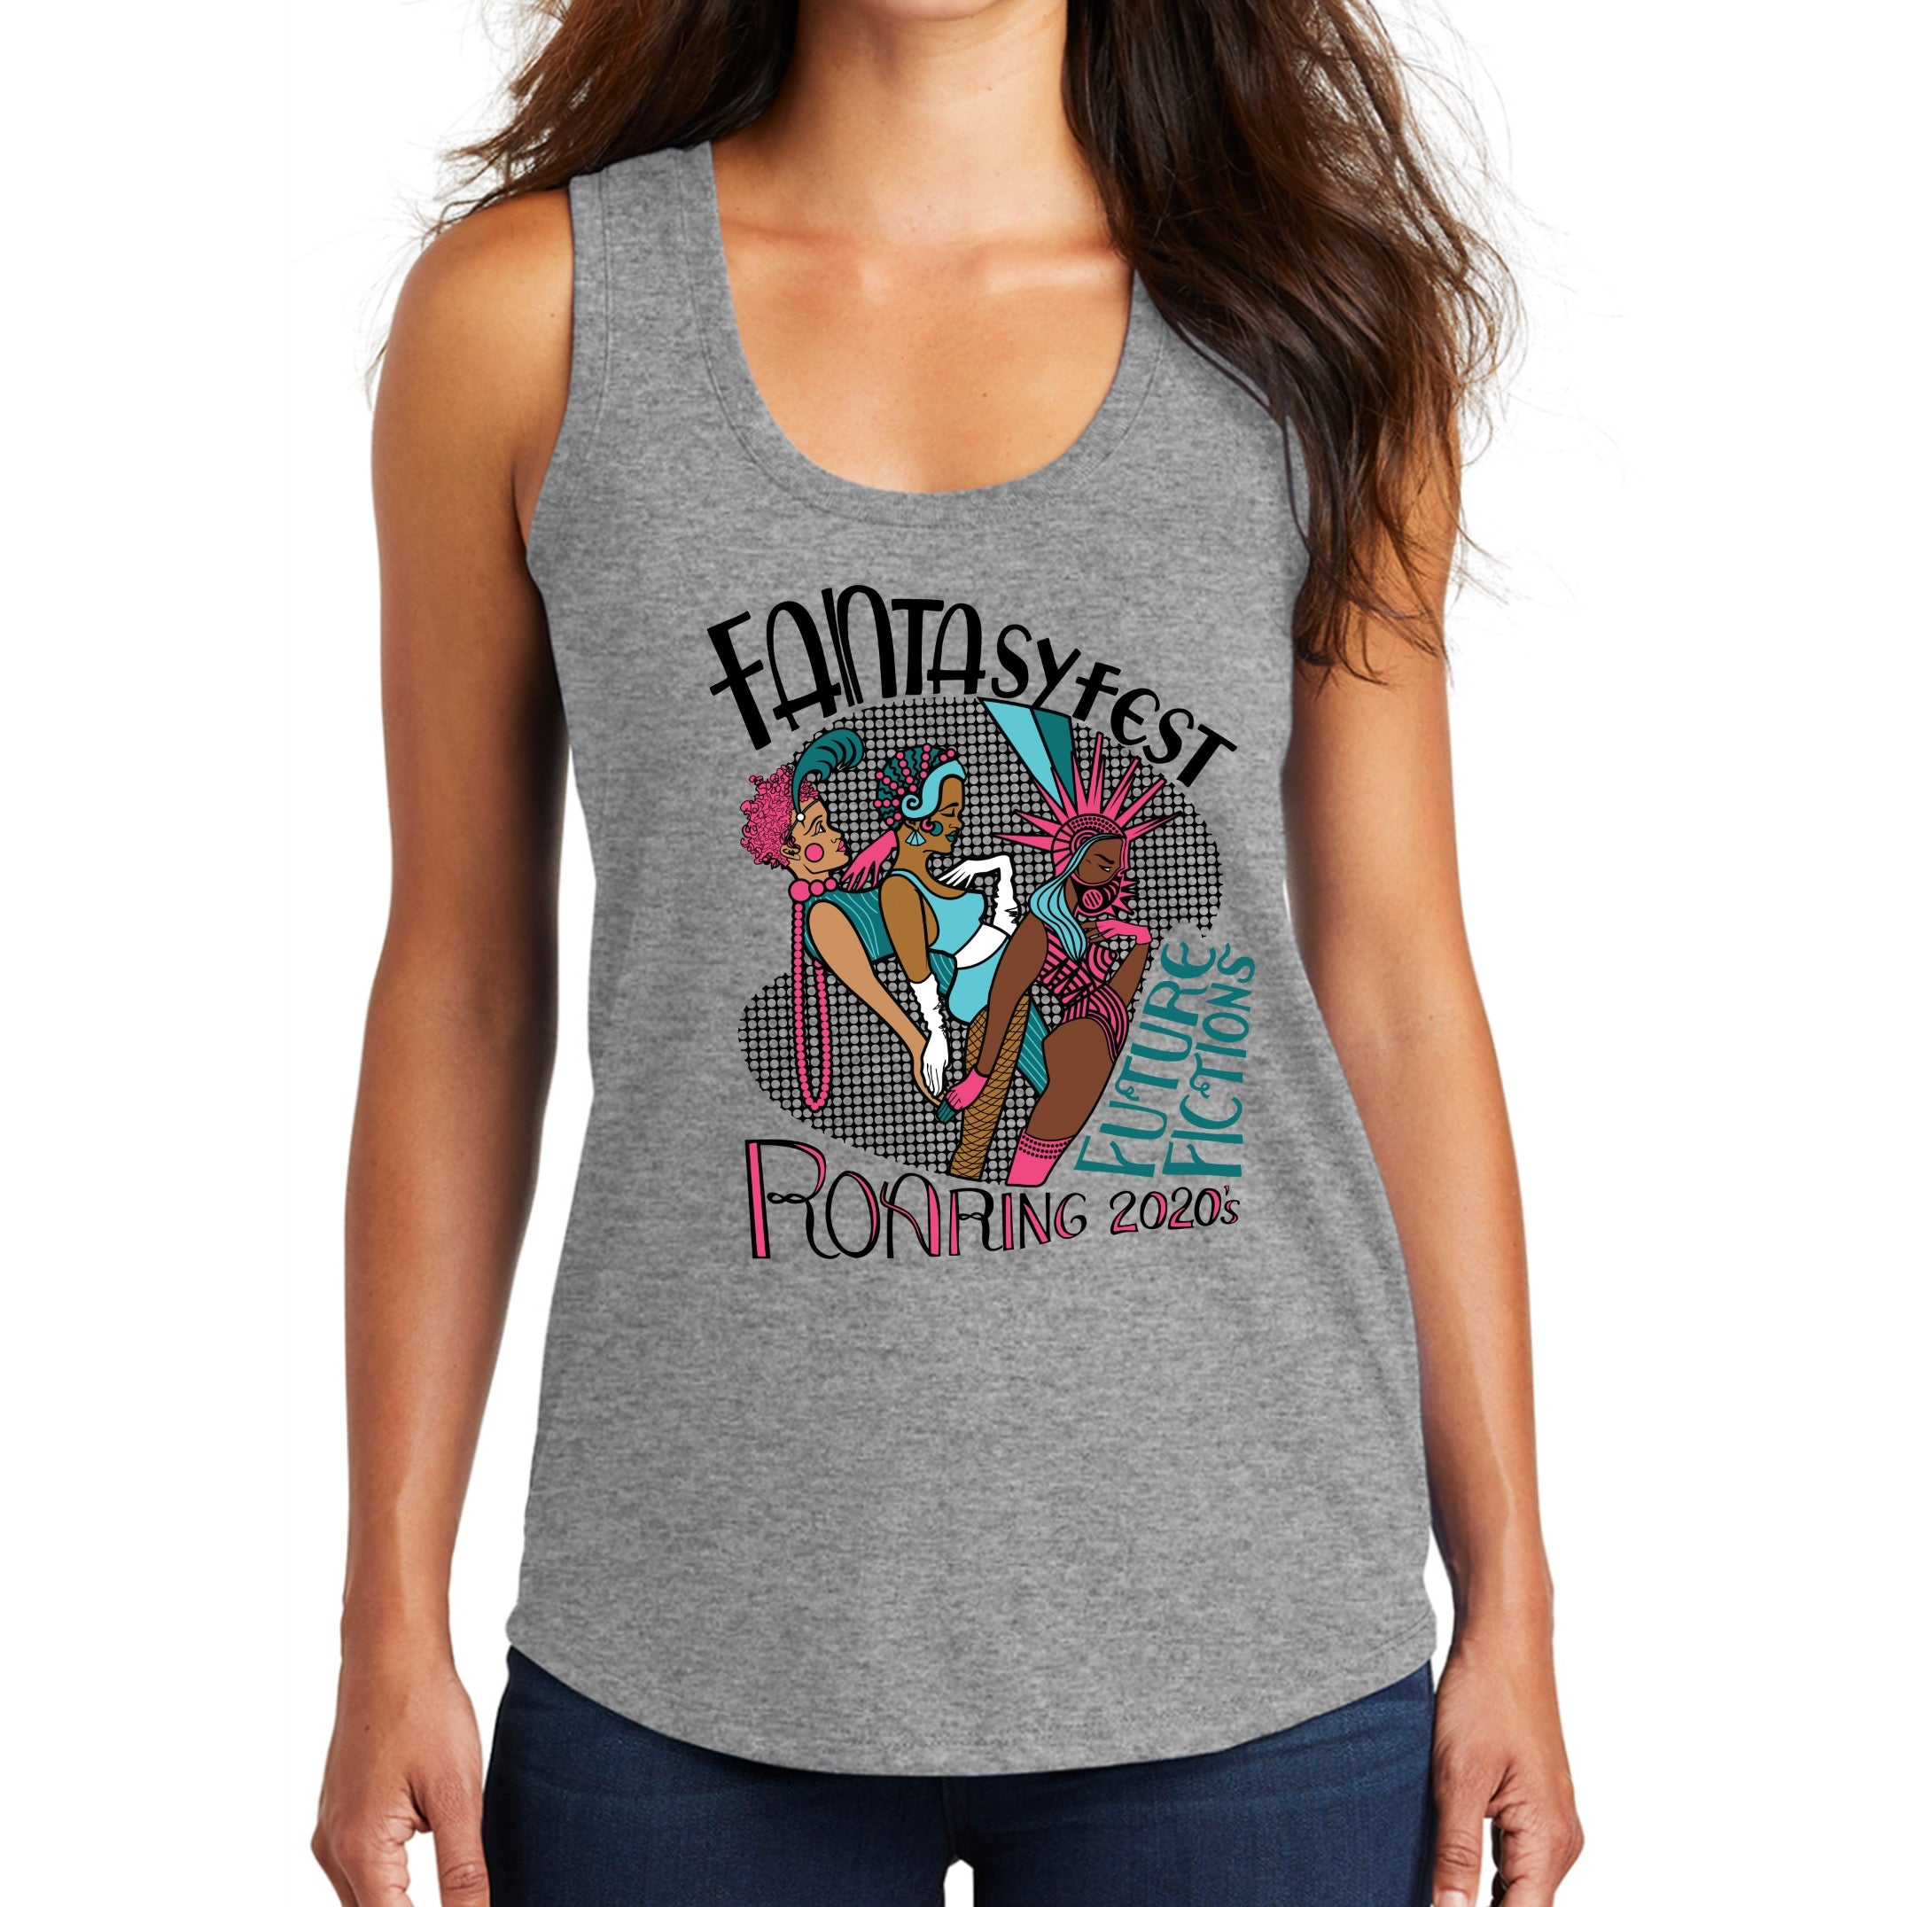 Official 2020 Fantasy Fest Ladies Racerback Tank: Roaring 2020's & Future Fictions - Grey Frost